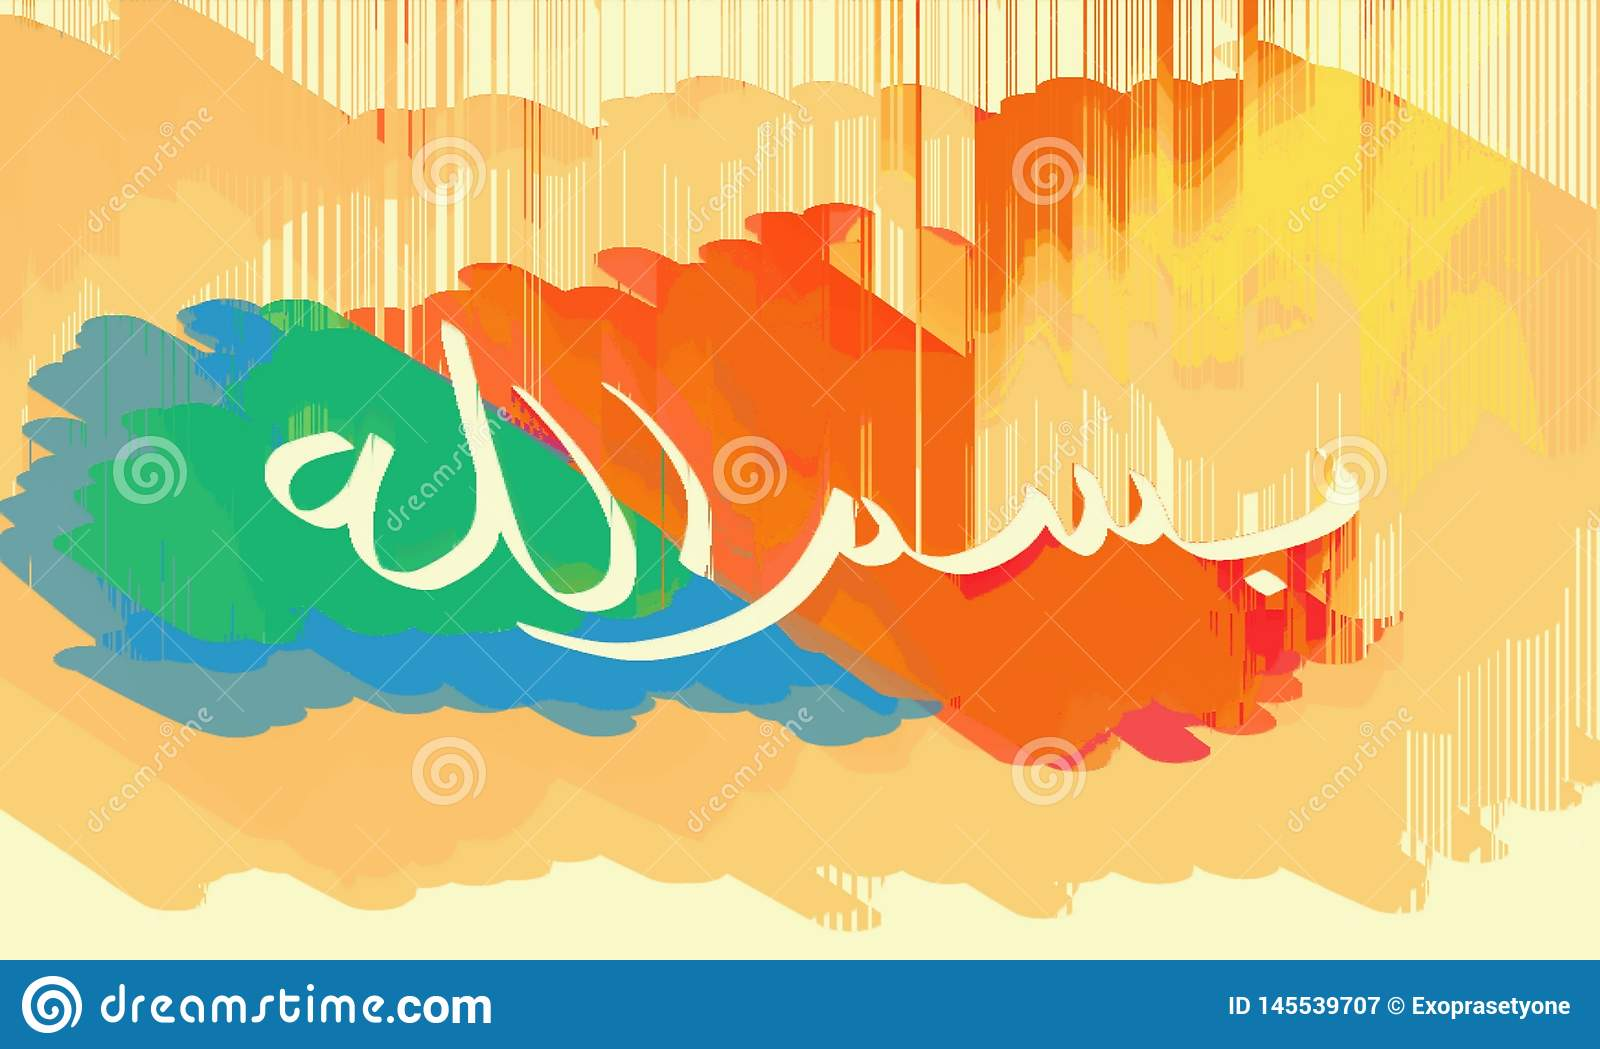 Arabic writing calligraphy that is very popular with Muslims